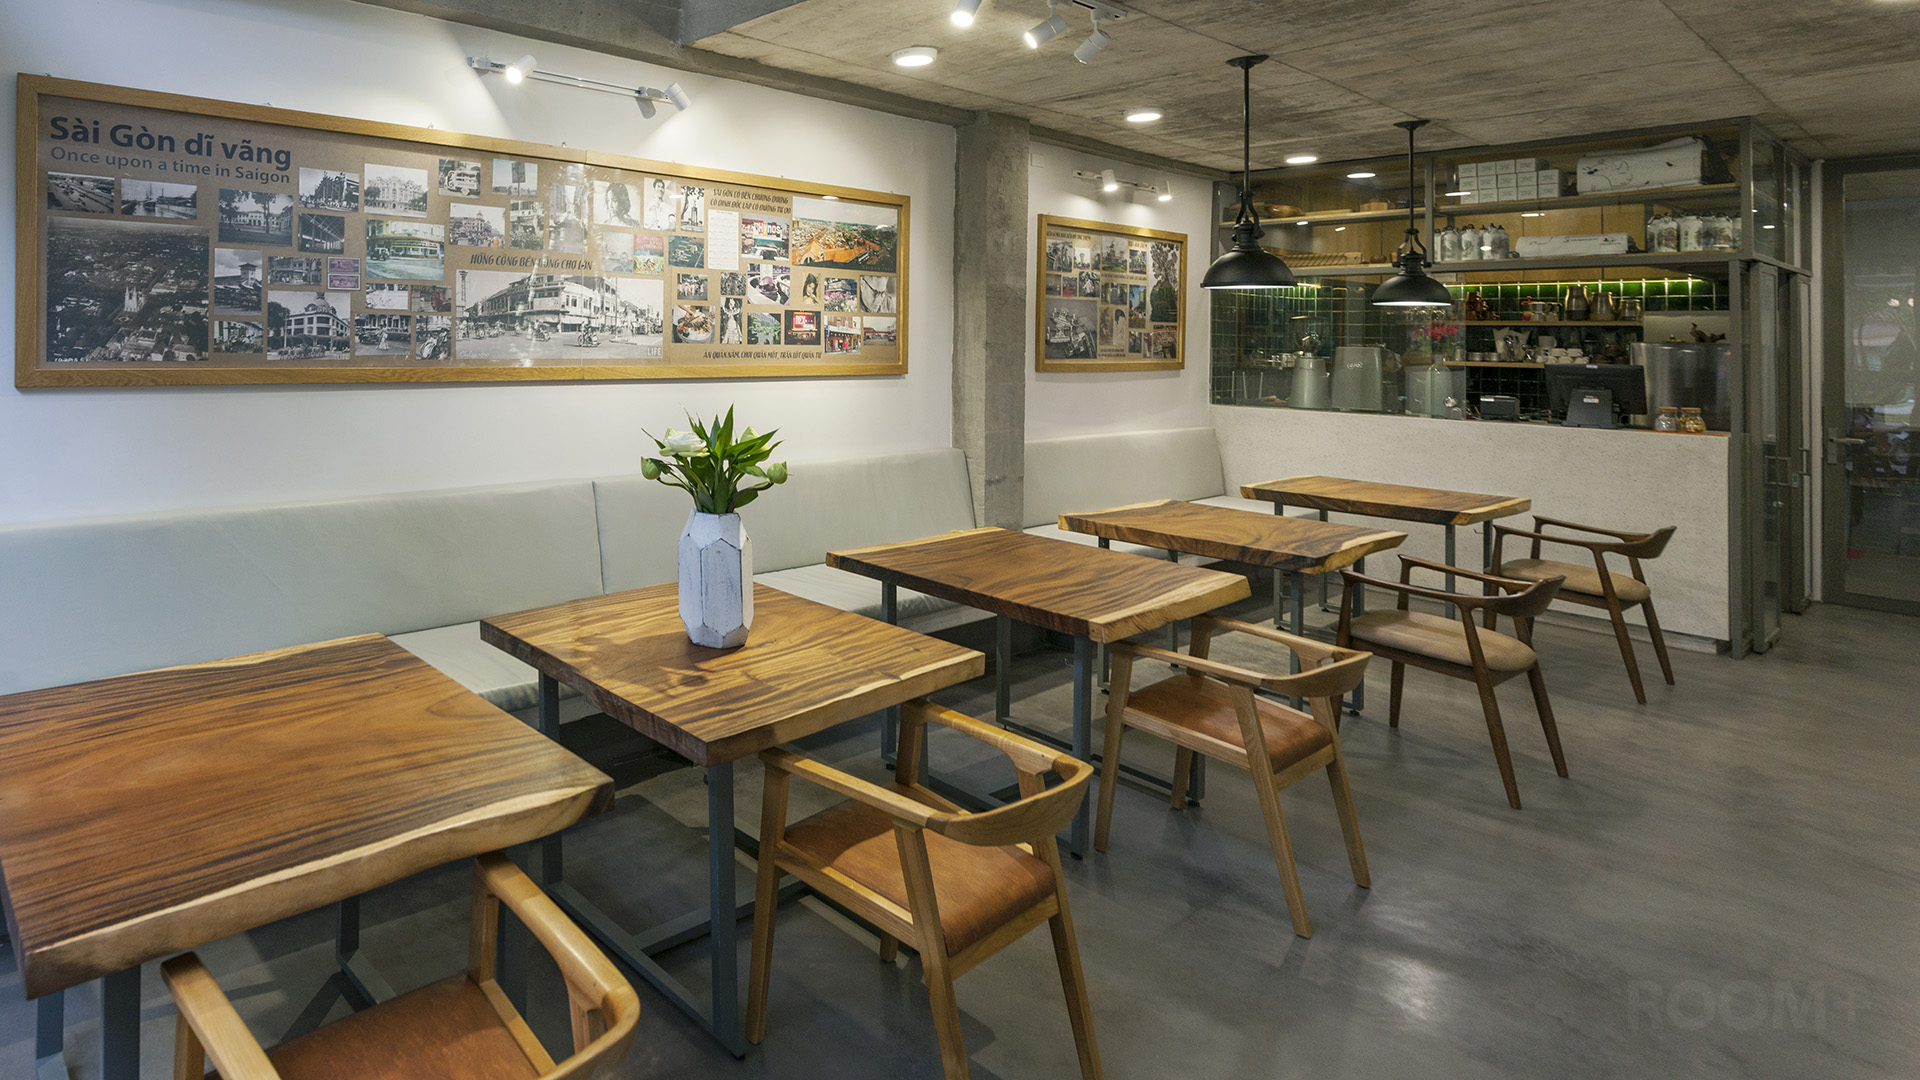 Work'in Saigon Café & Co-working